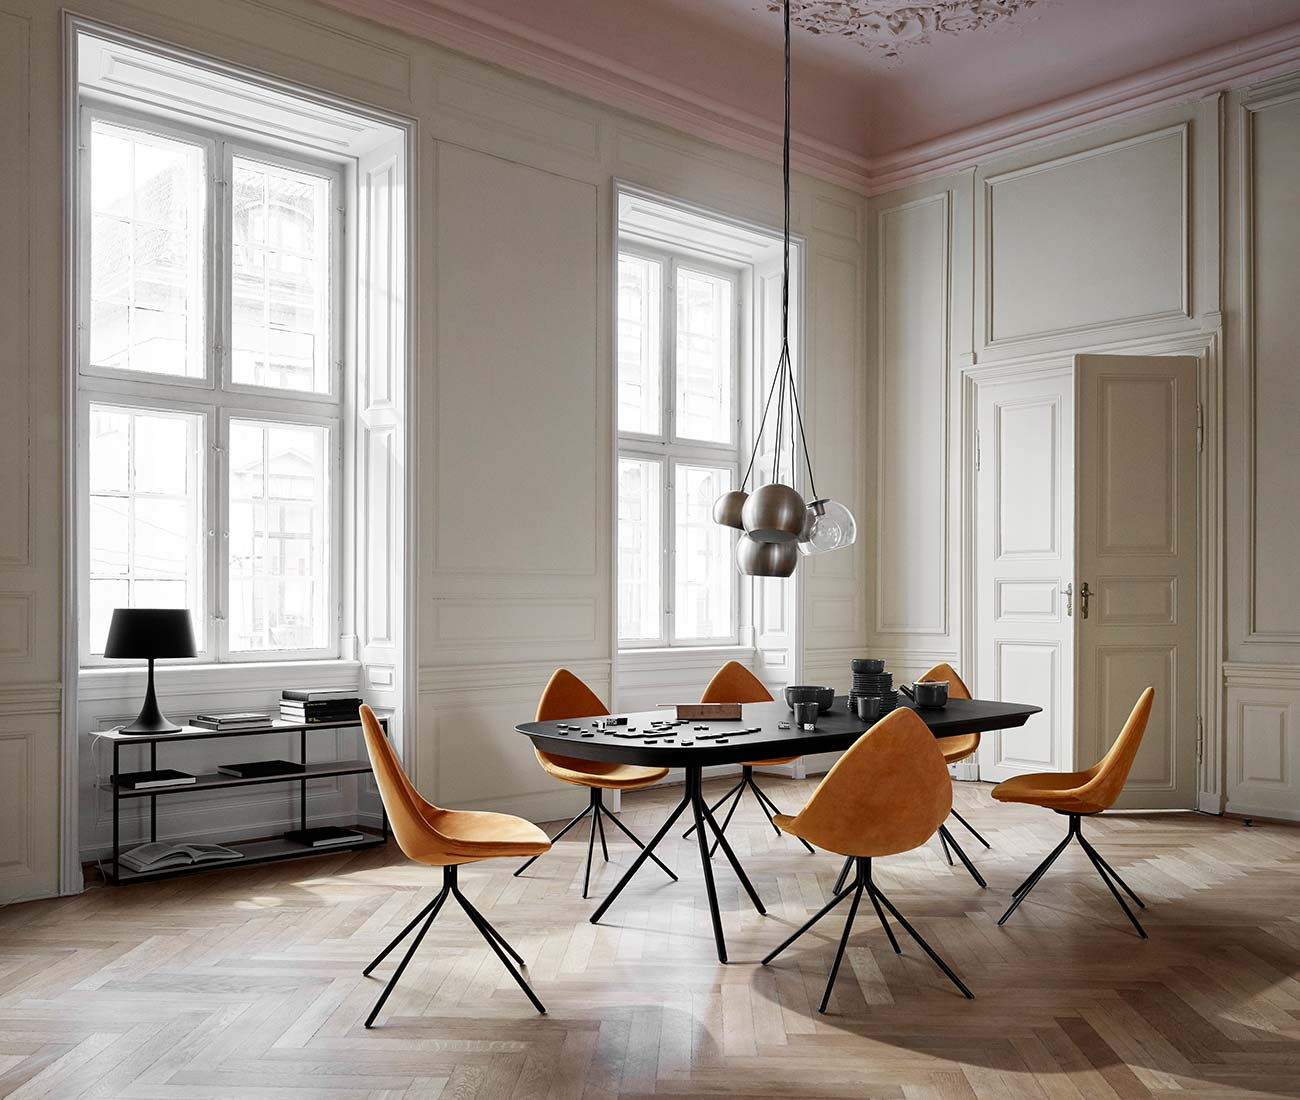 Arte-m Furniture Uk Contemporary Danish Furniture Discover Boconcept